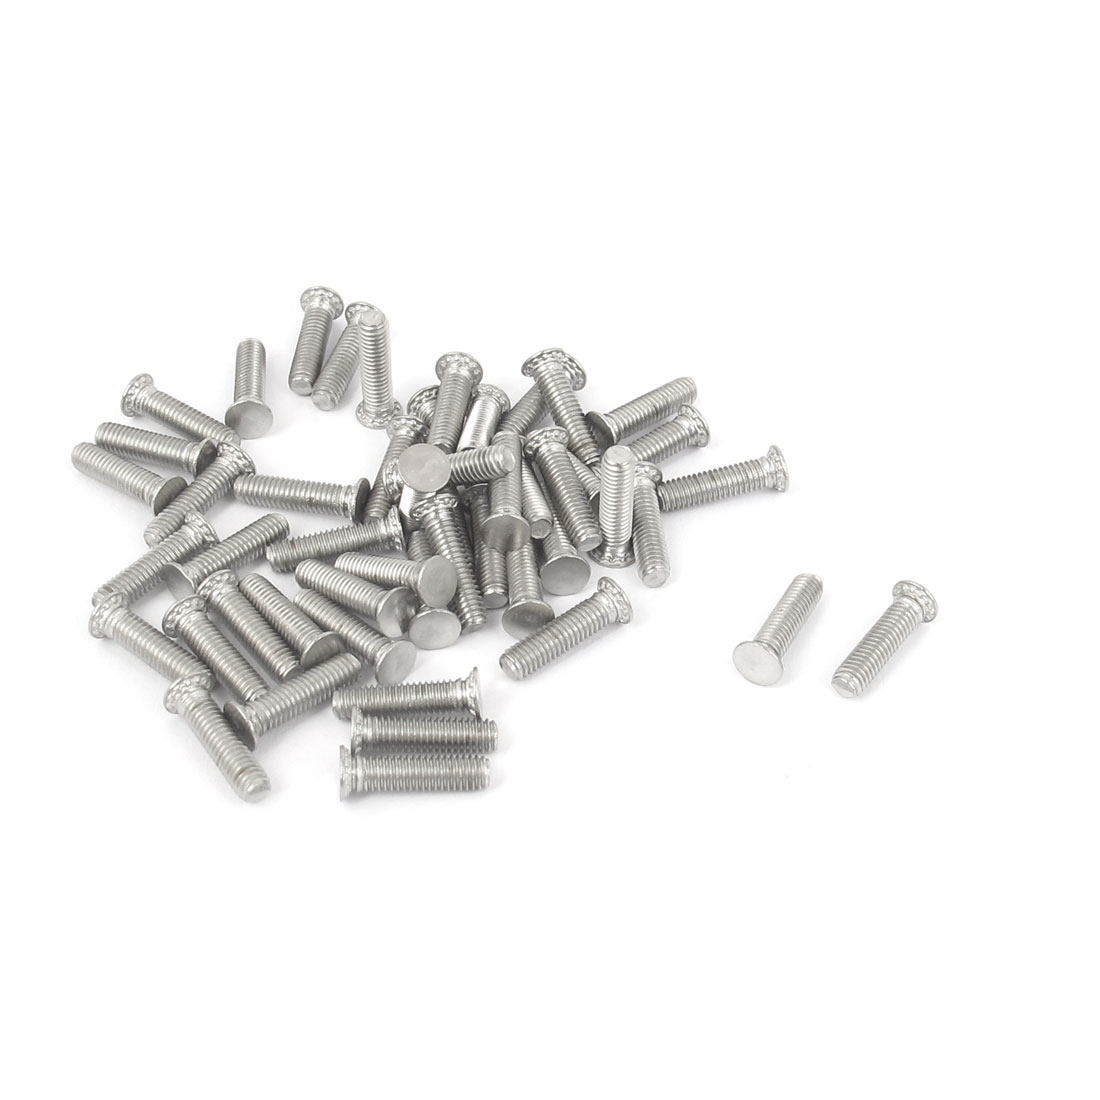 M3x12mm Flush Head Stainless Steel Self Clinching Threaded Studs Fastener 50pcs